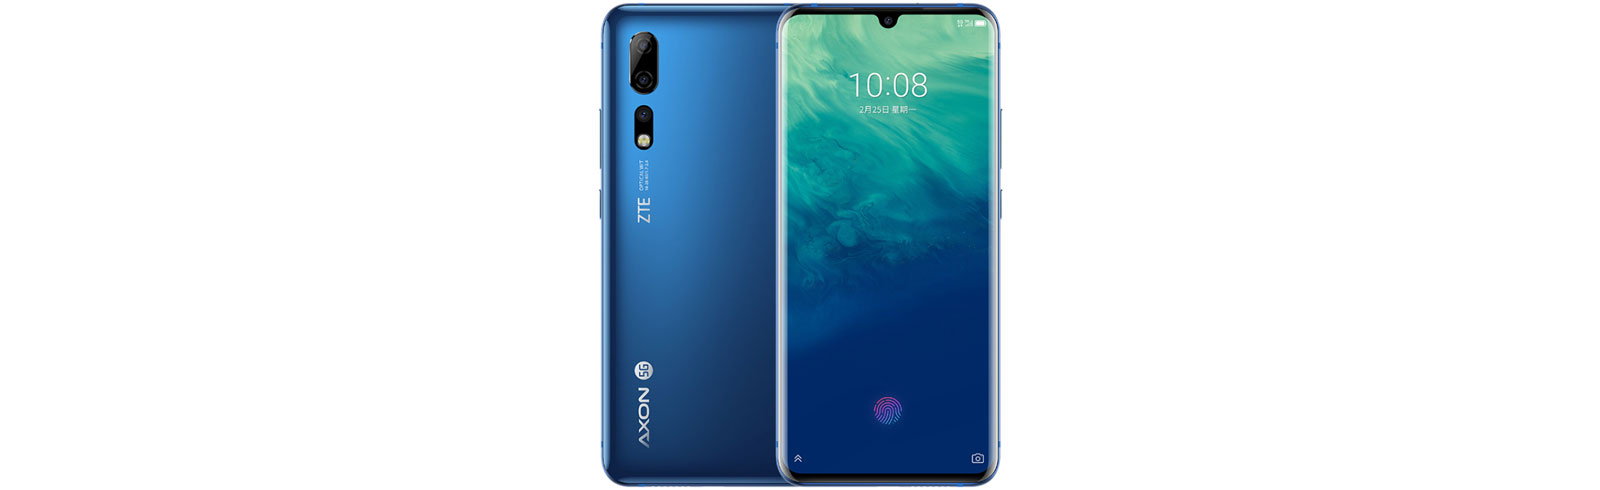 ZTE Axon 10 Pro 5G is now open for registrations and will go on sale on August 5th